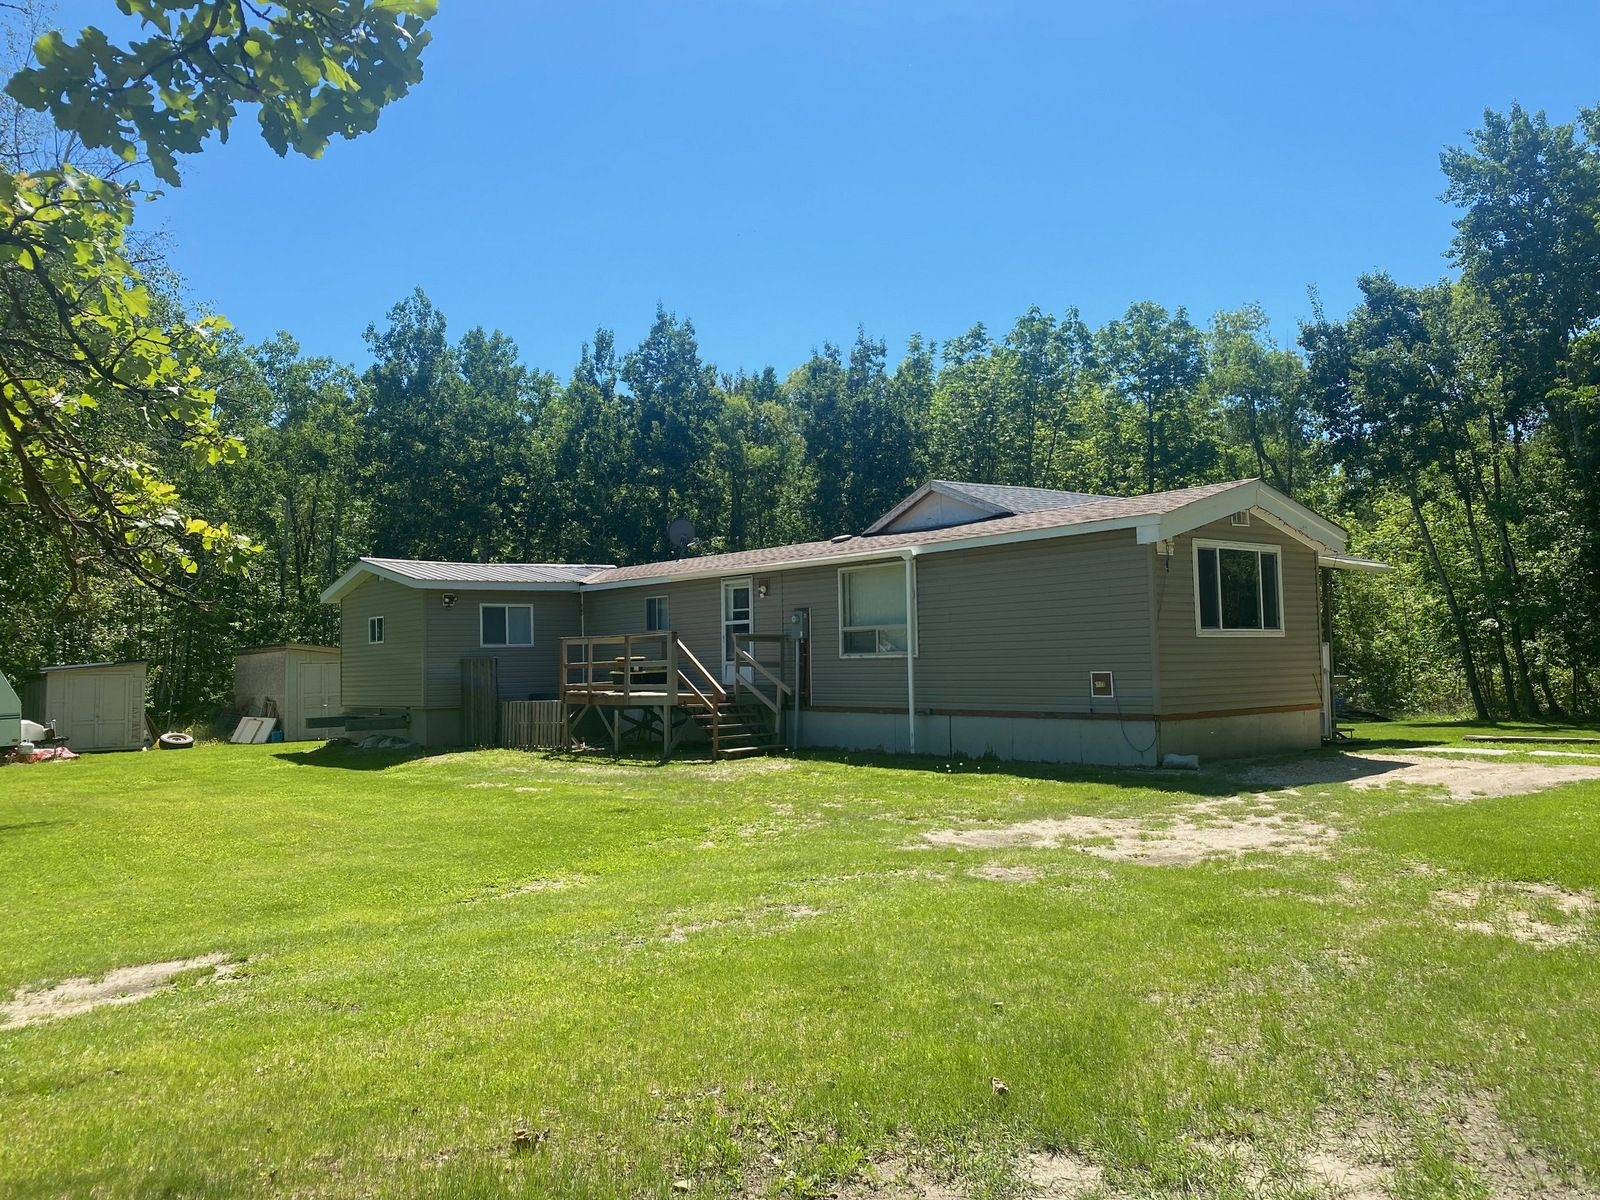 Main Photo: 57149 Road 33 W in Portage la Prairie RM: House for sale : MLS®# 202115033